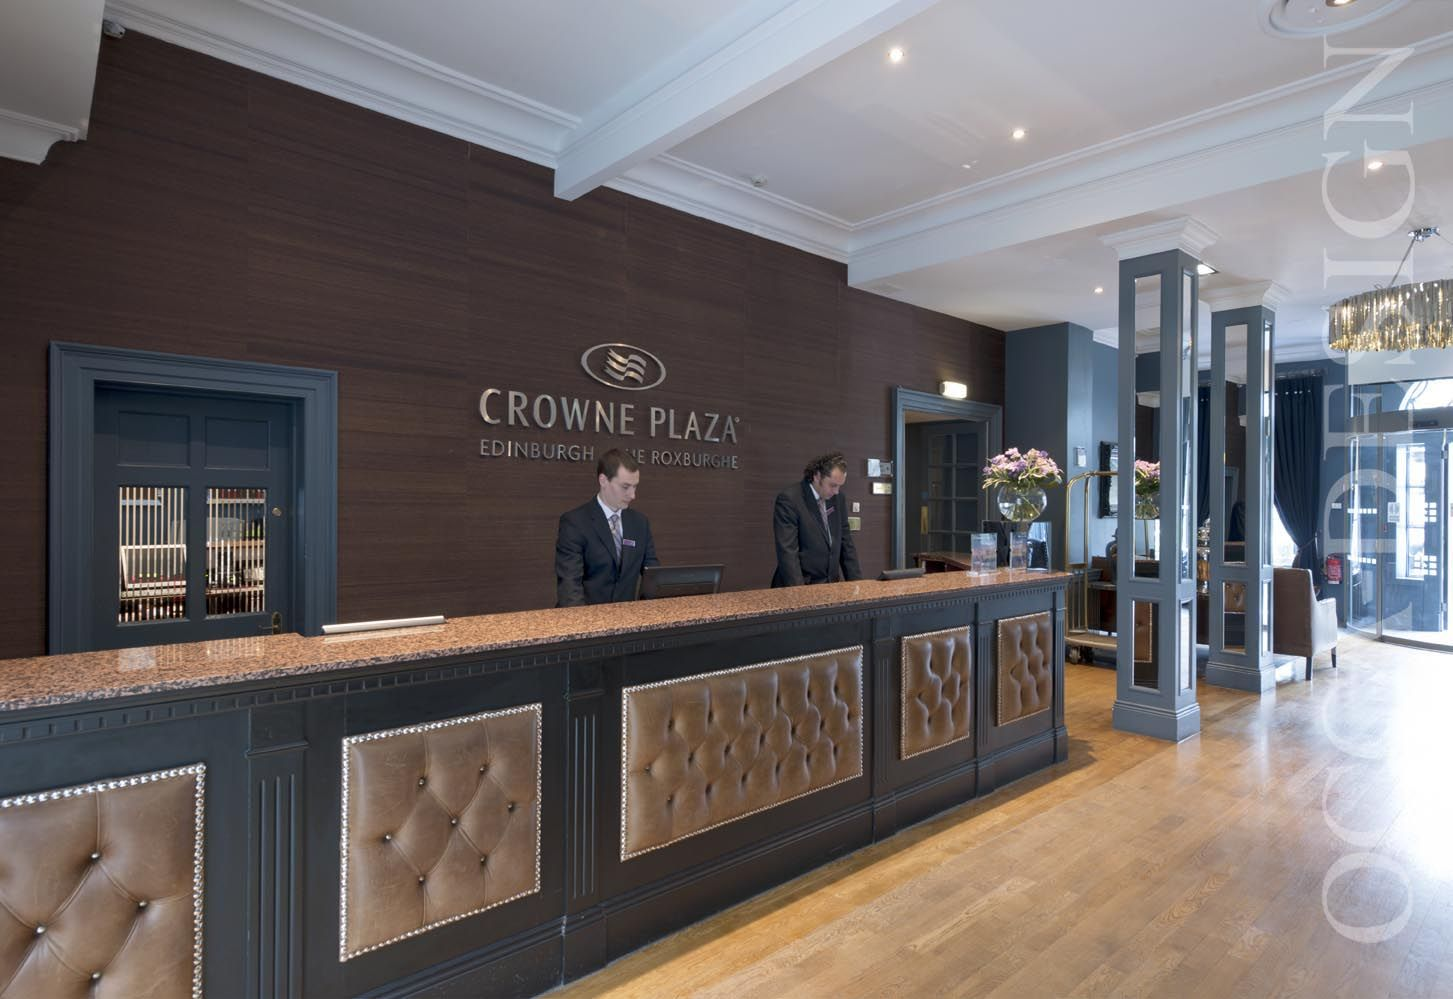 Crowne plaza hotel edinburgh hotel reception area for Design hotel edinburgh